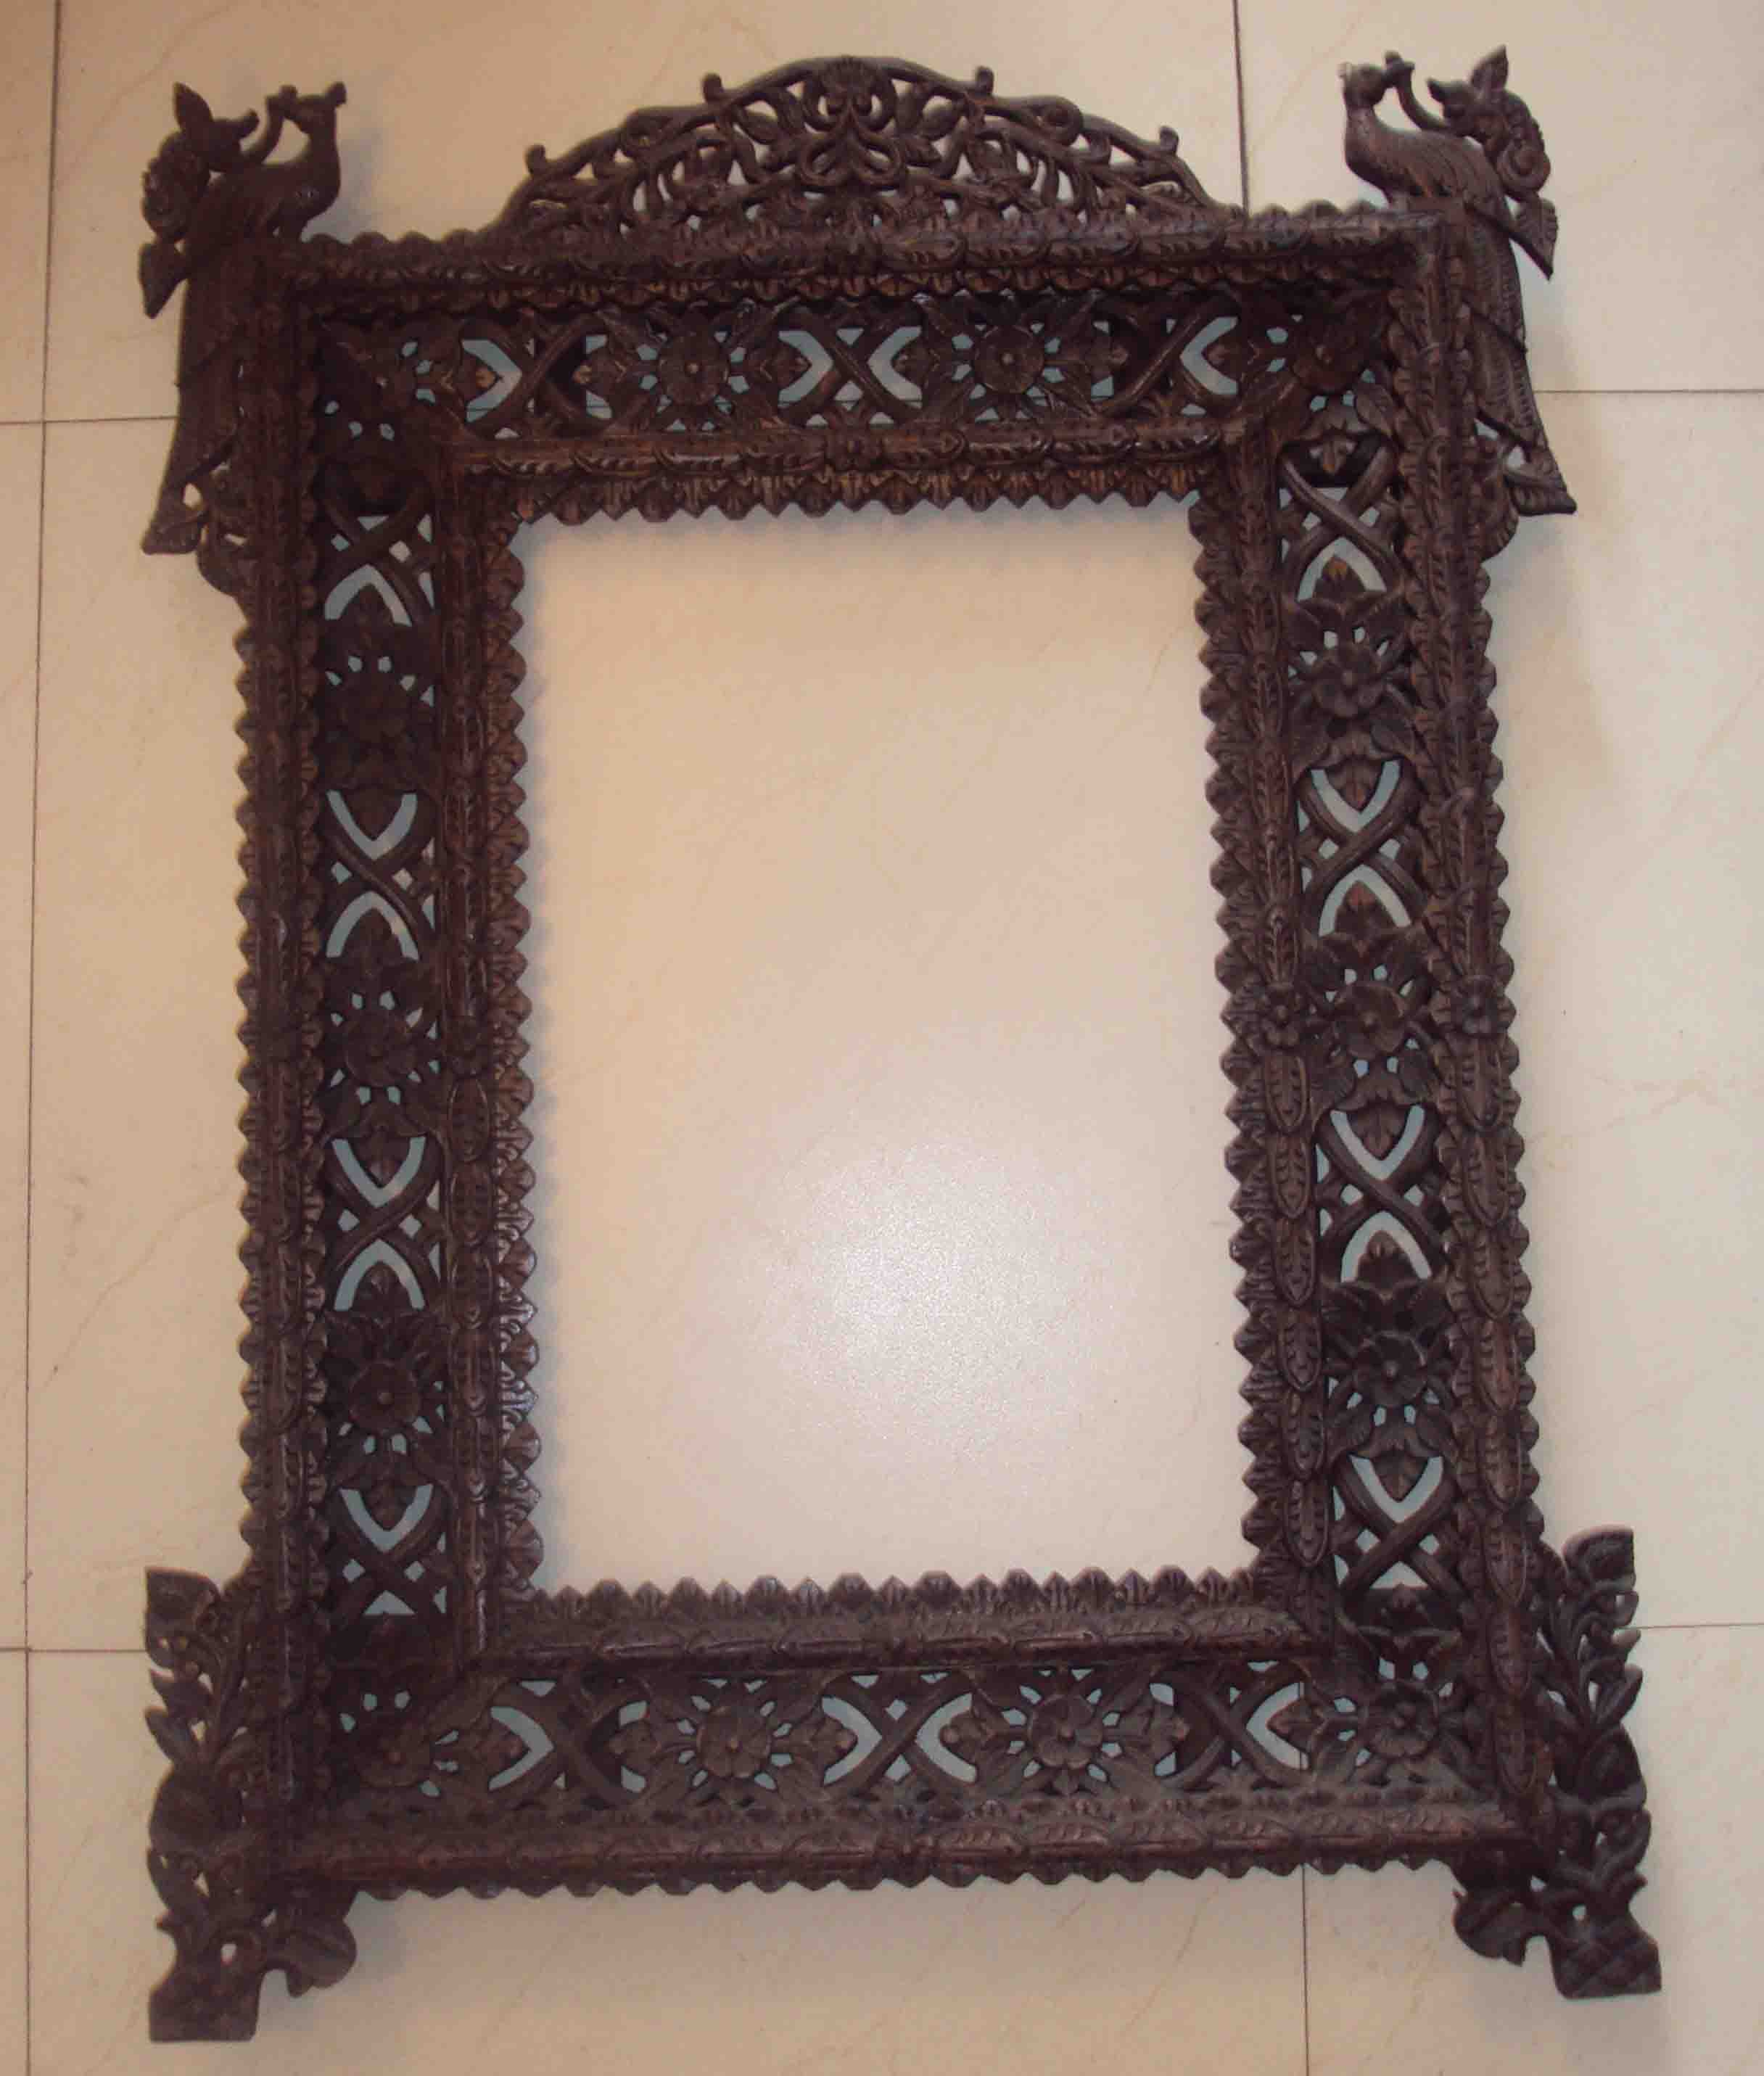 Carved Wood Wall Decor - Buy Carved Wood Wall Decor Product on Alibaba.com